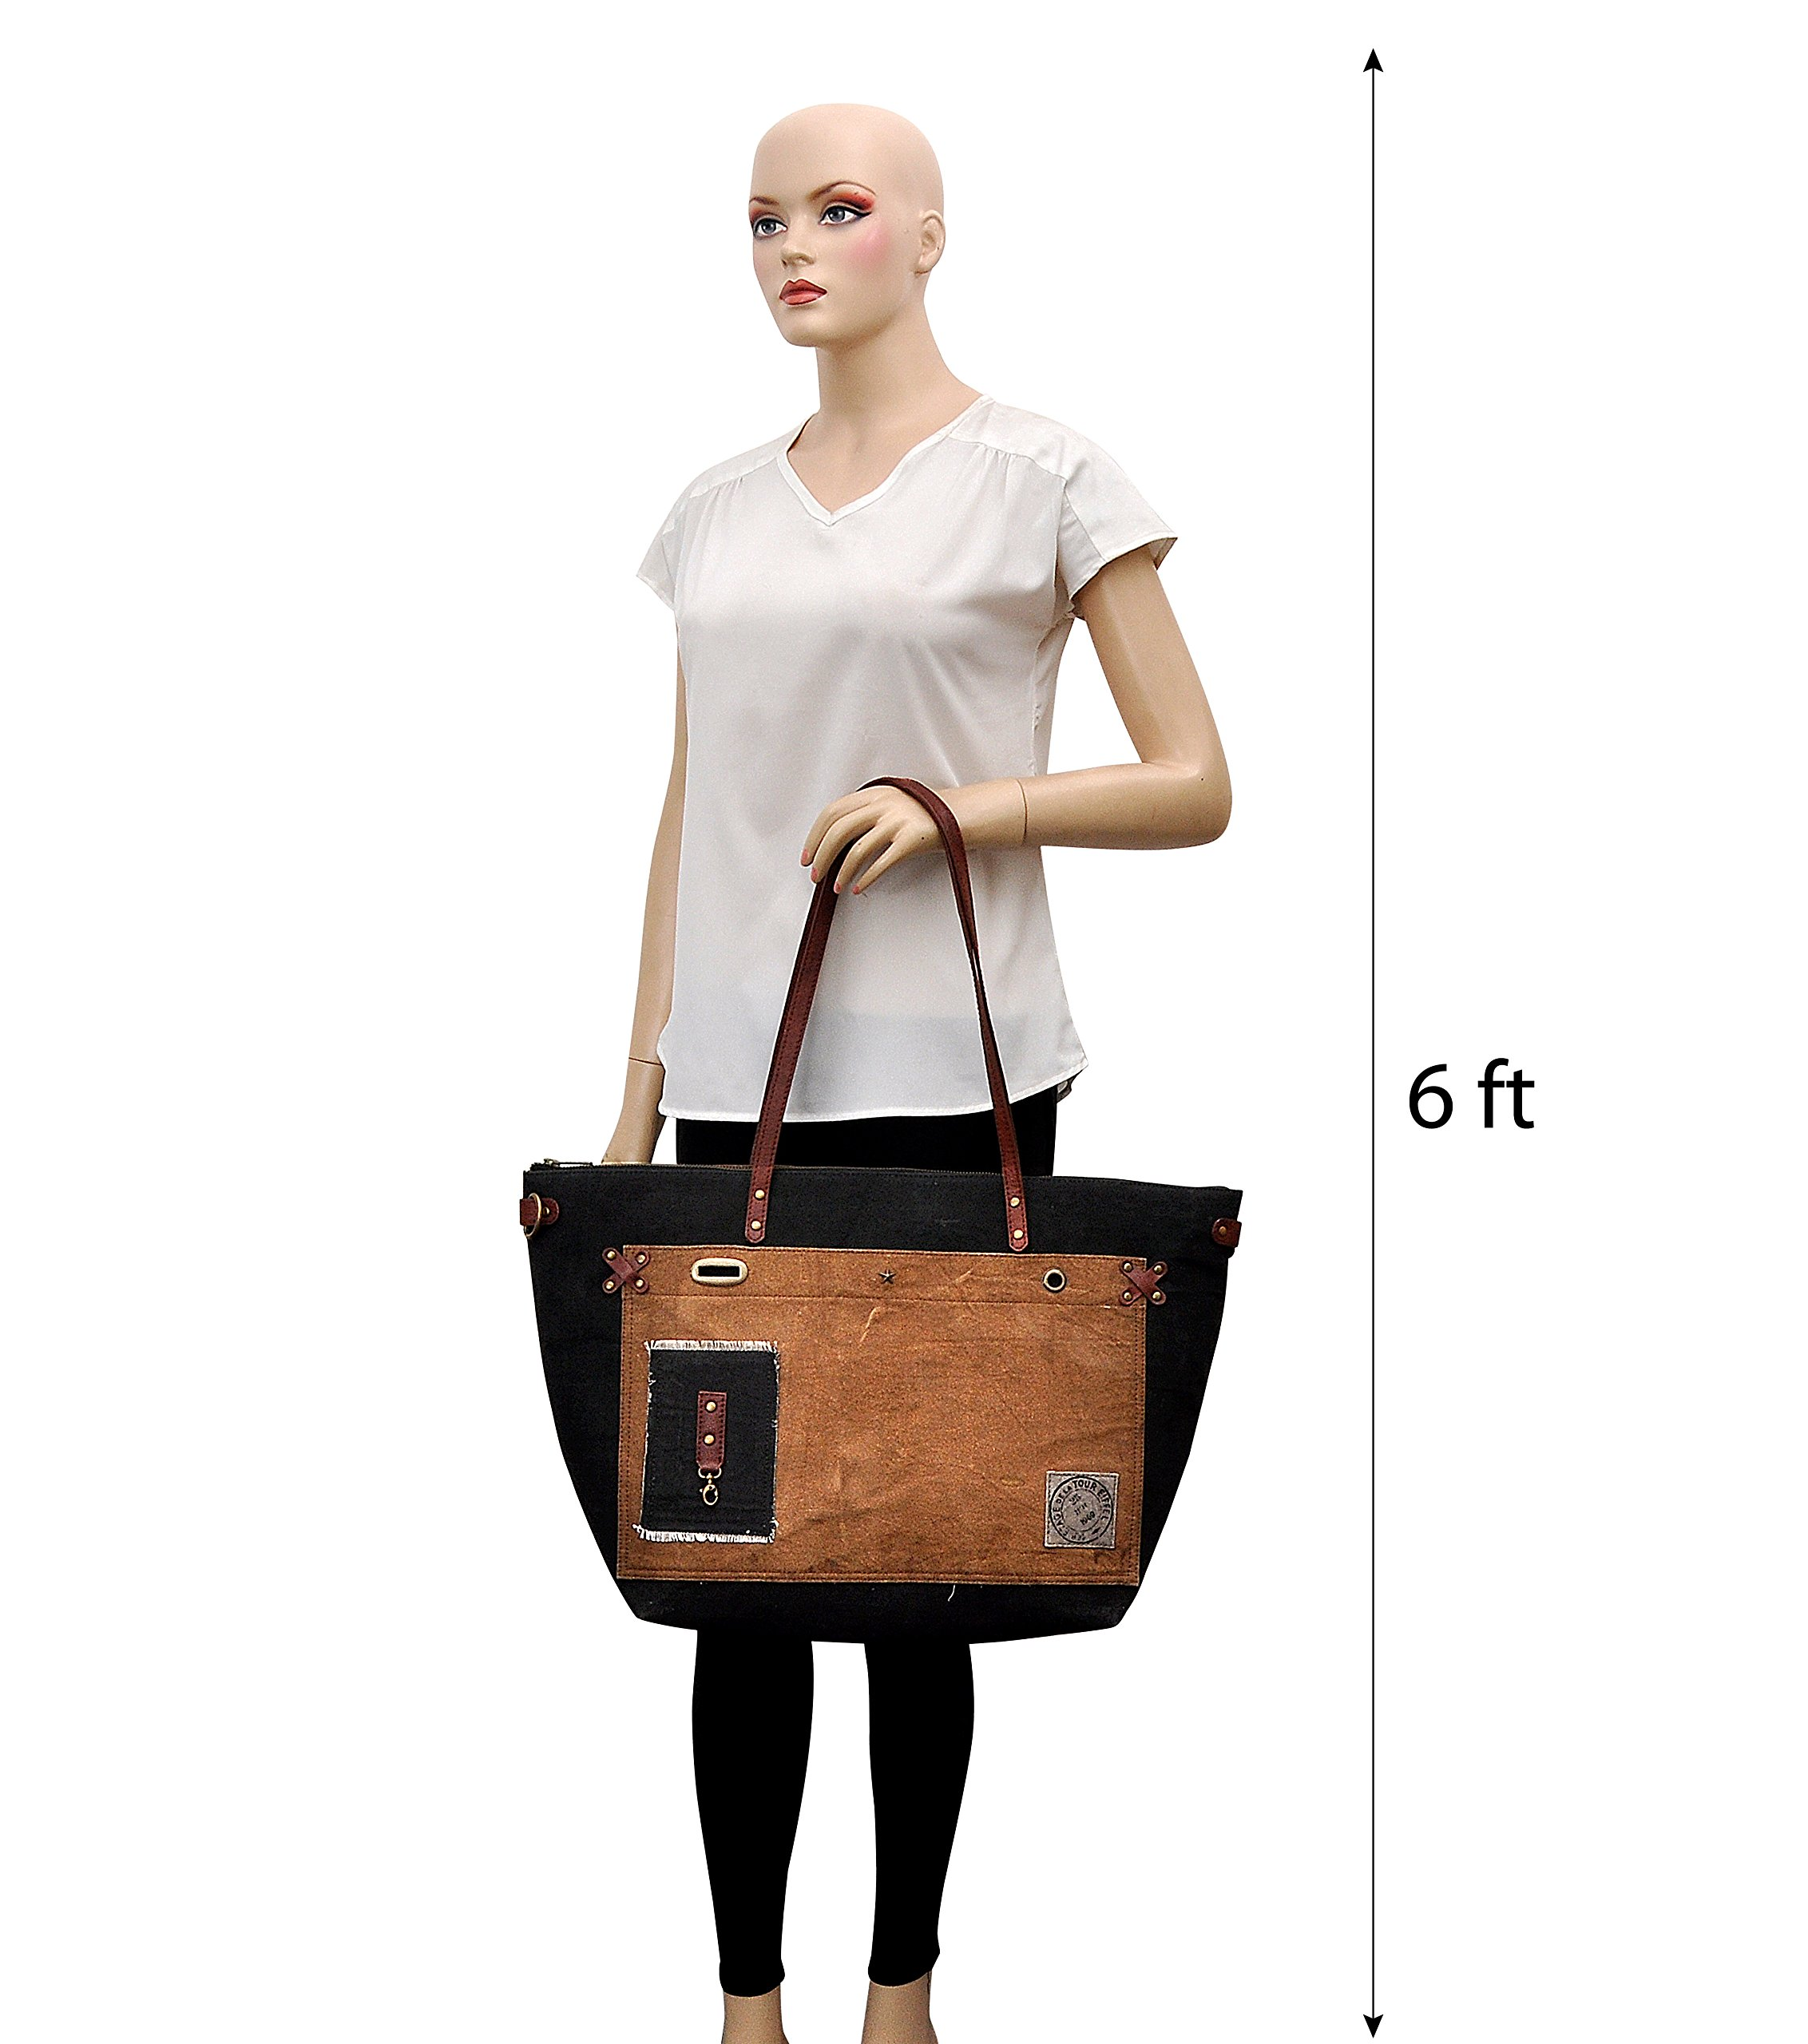 Tote bag for Women, Unique Design, Made of Canvas and Leather, Eco friendly bag, Handbags for Women by Daphne (Vitamin Sea) by Daphne's Headcovers (Image #7)